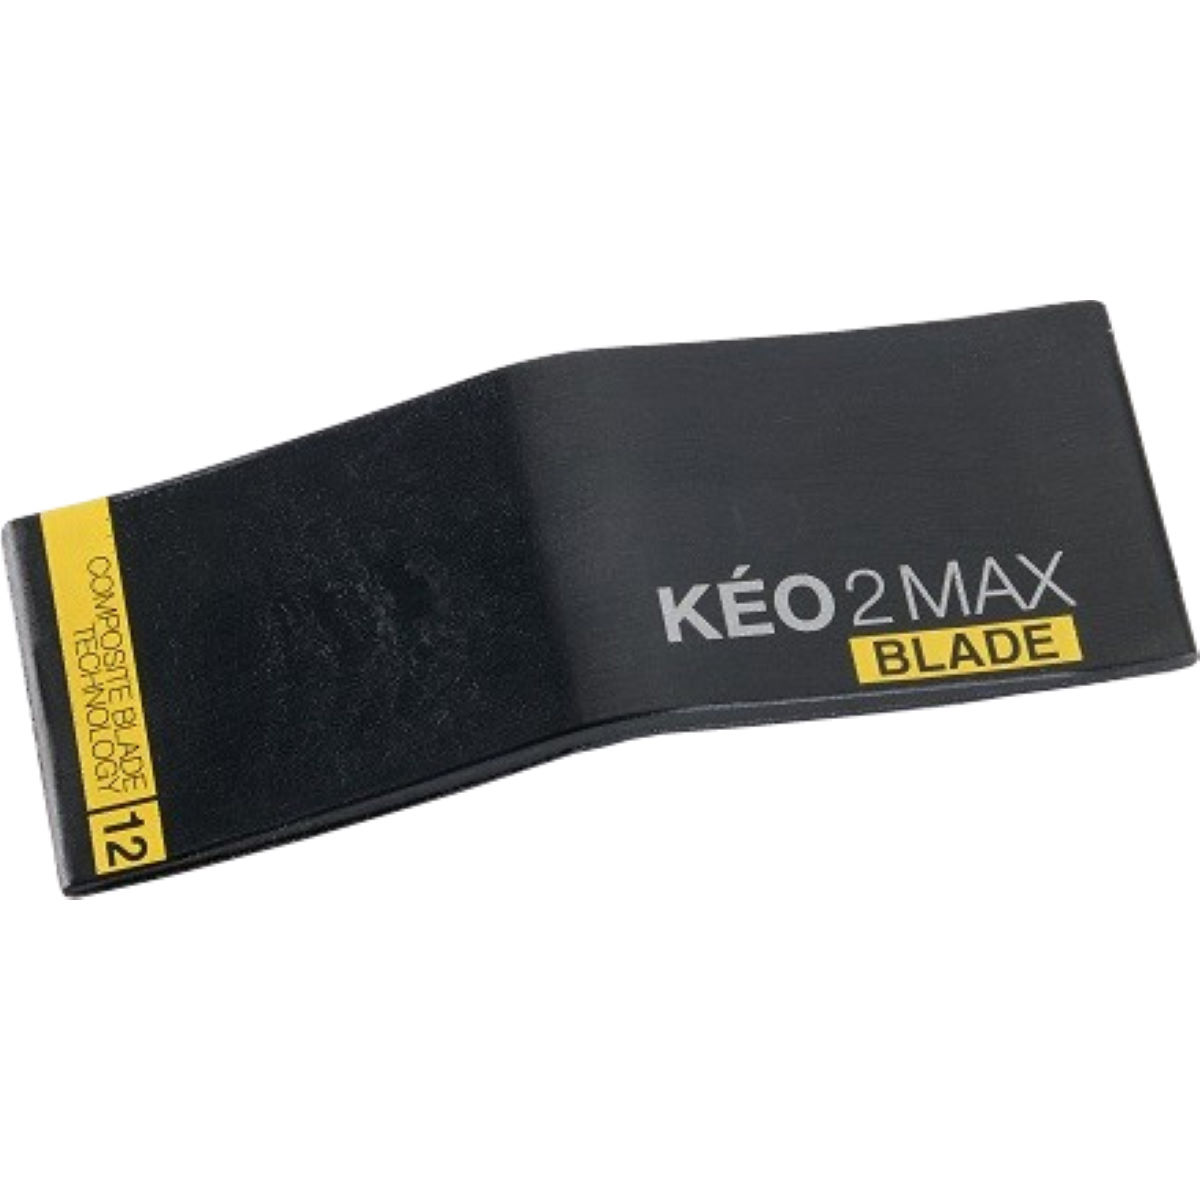 Ressorts de tension Look Keo 2 Max Blade - 12Nm Tension Spring Jaune/Noir Pédales automatiques